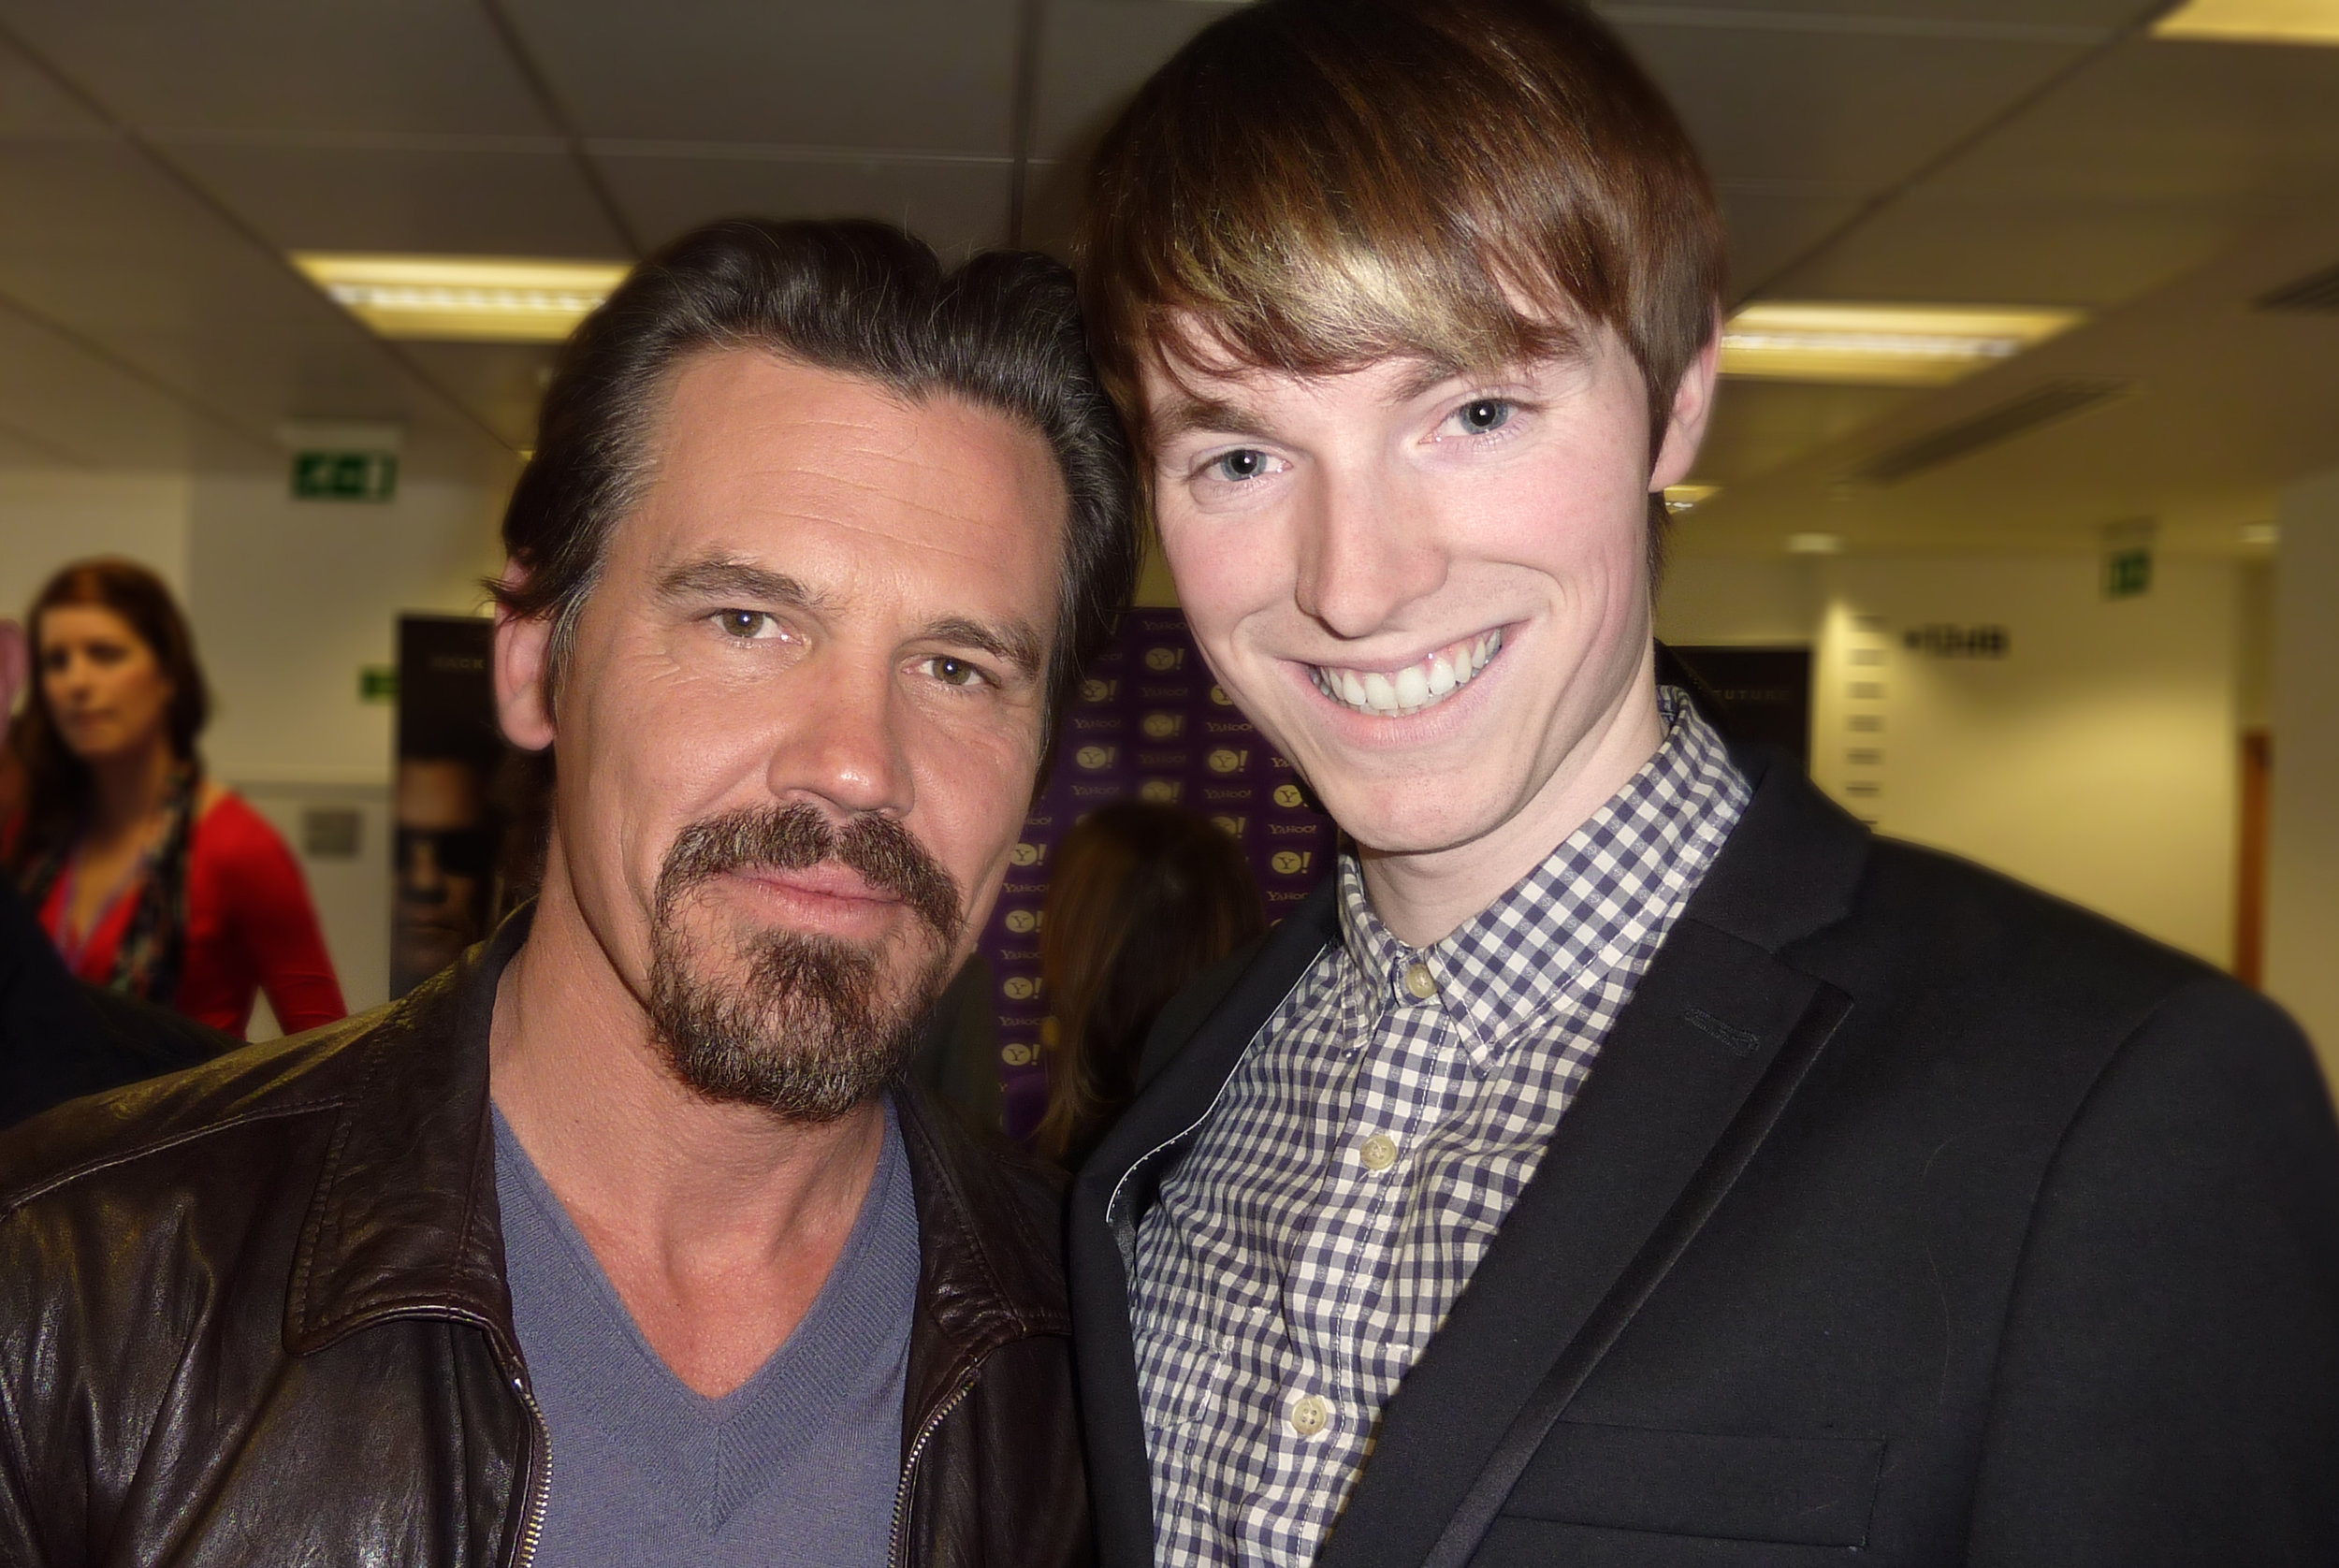 Josh Brolin & Richard Brownlie-Marshall